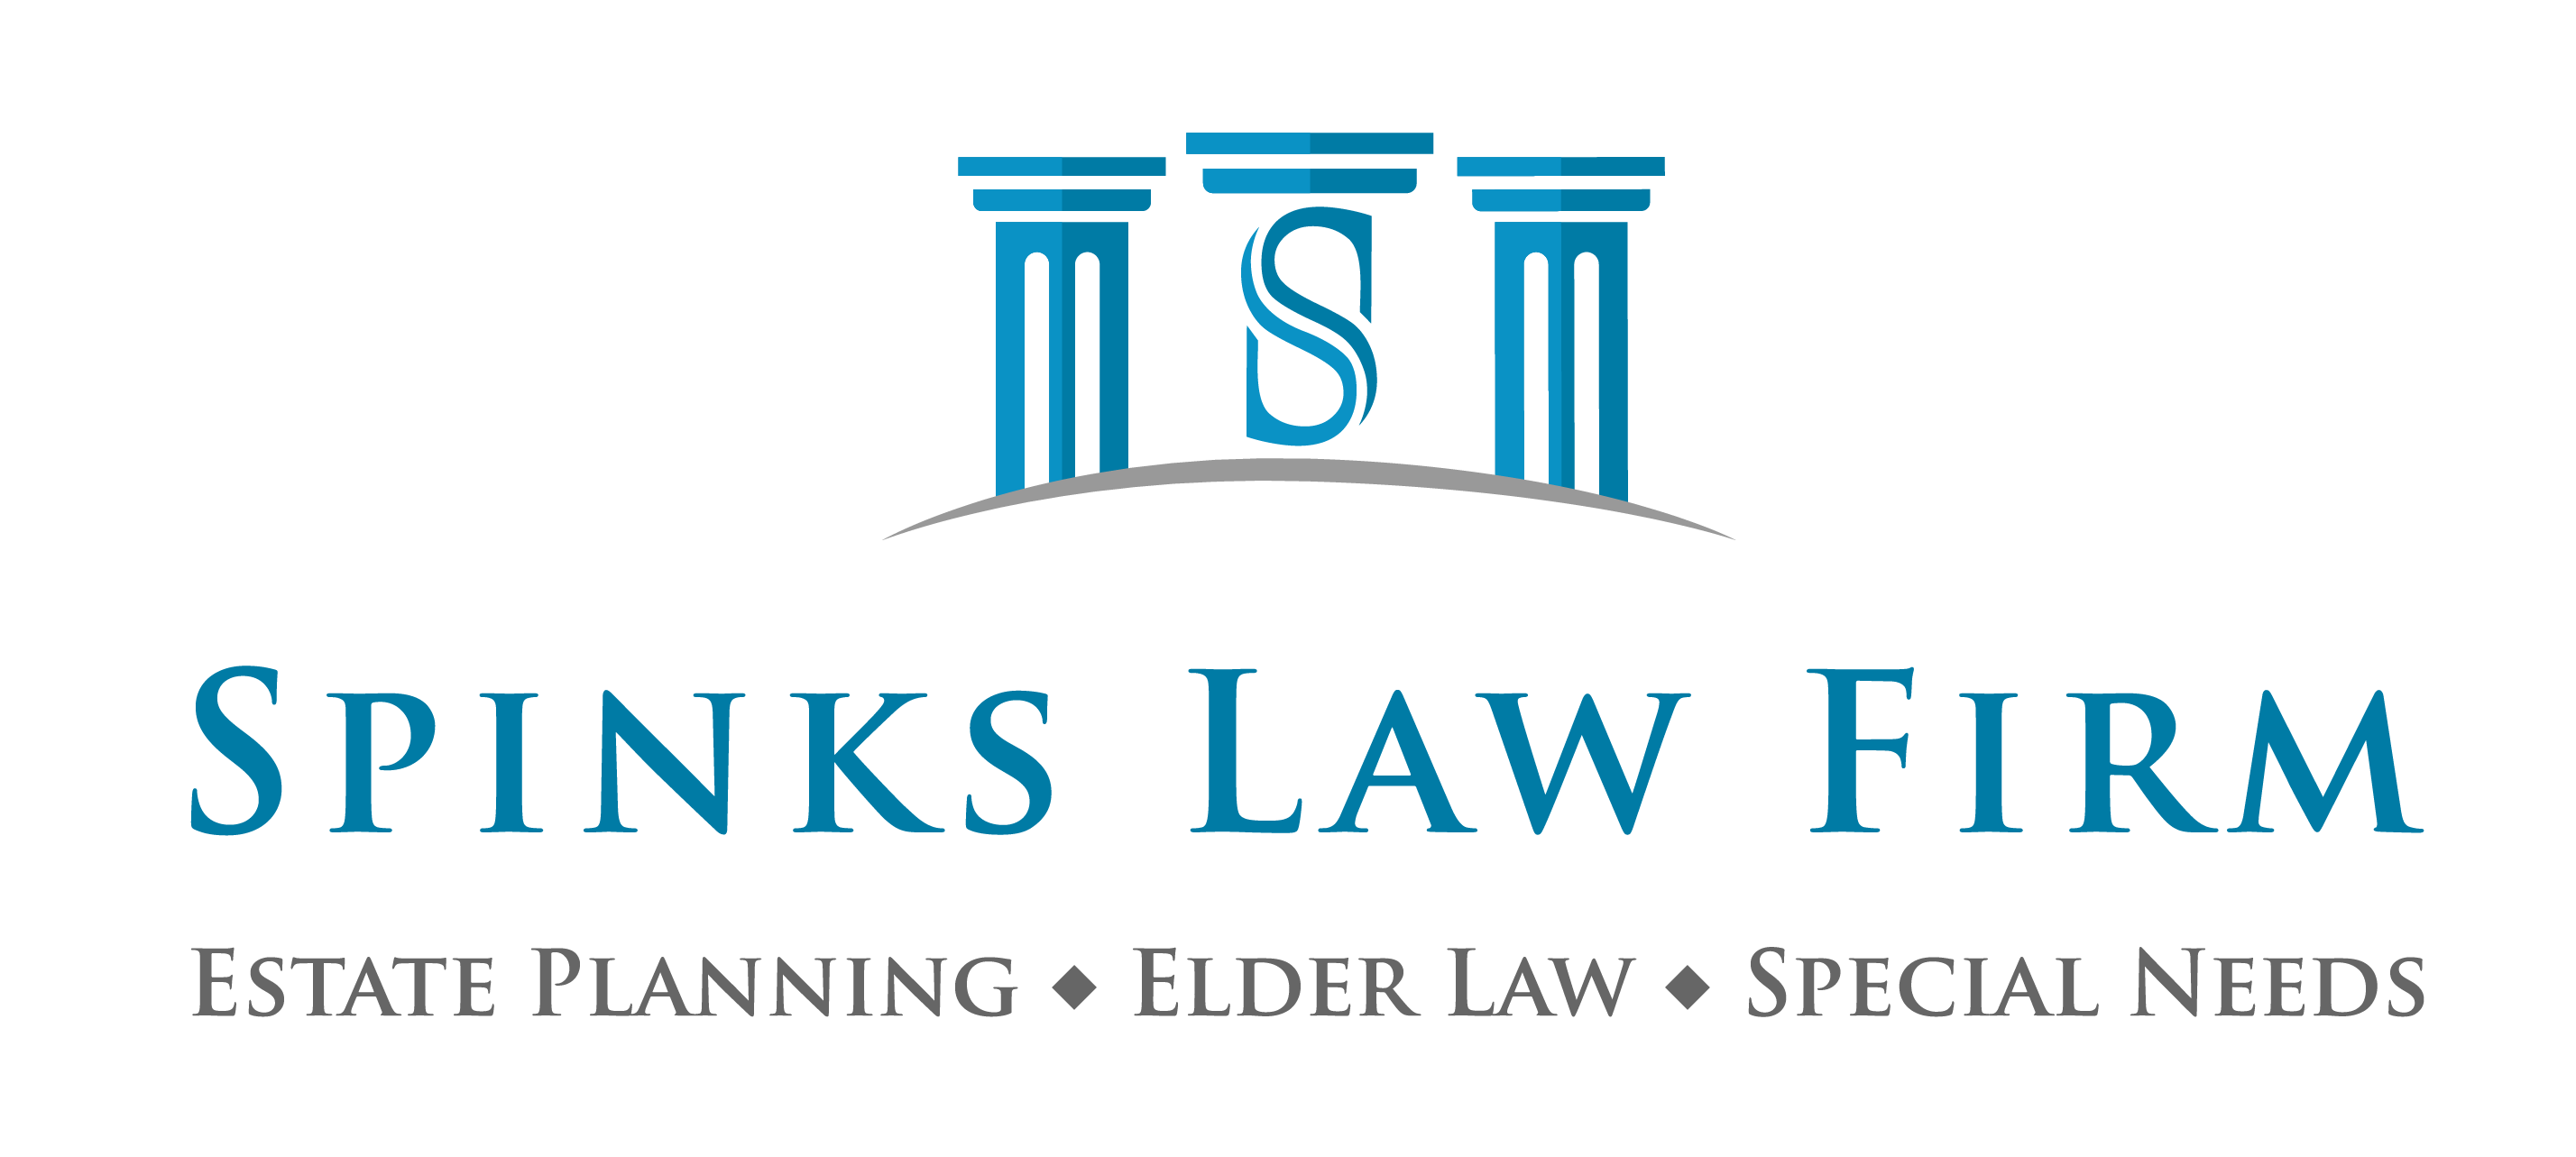 Spinks Law Firm logo